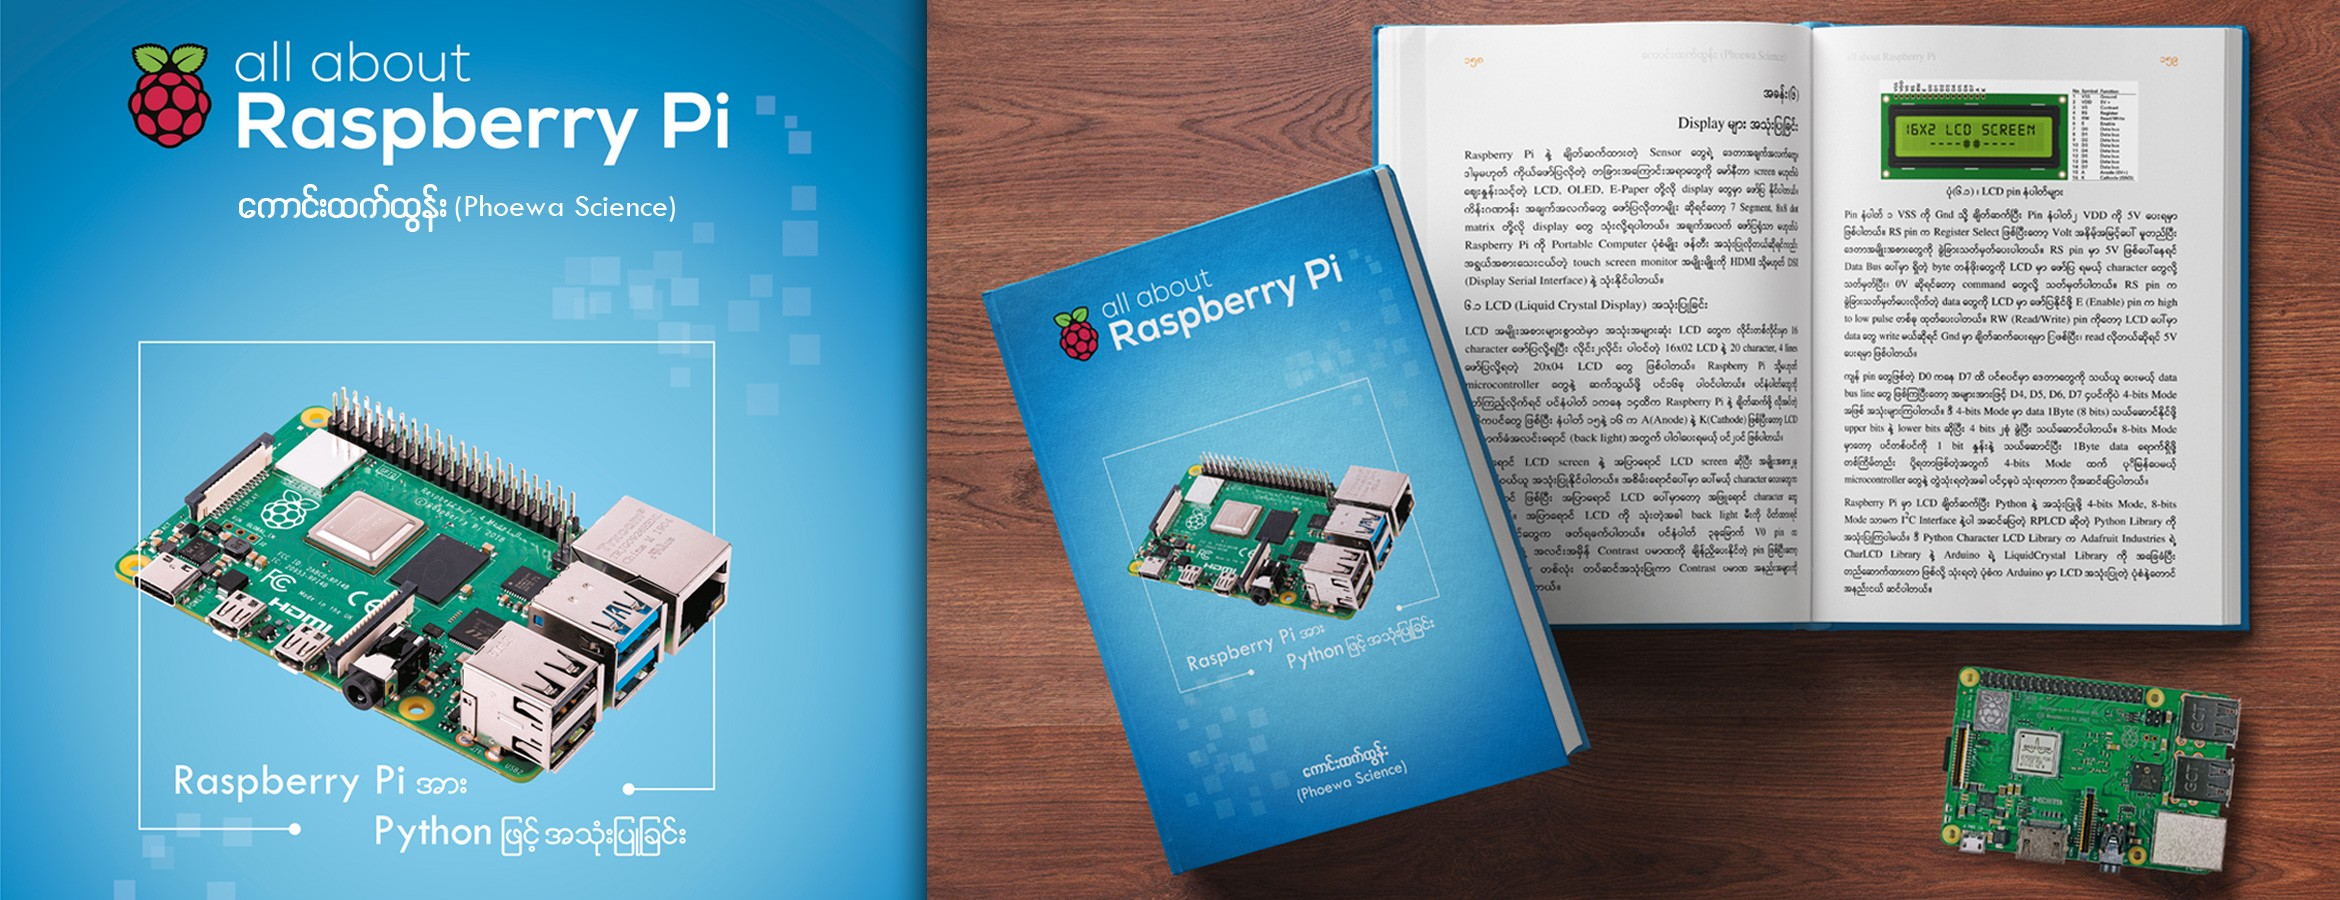 all about Raspberry Pi